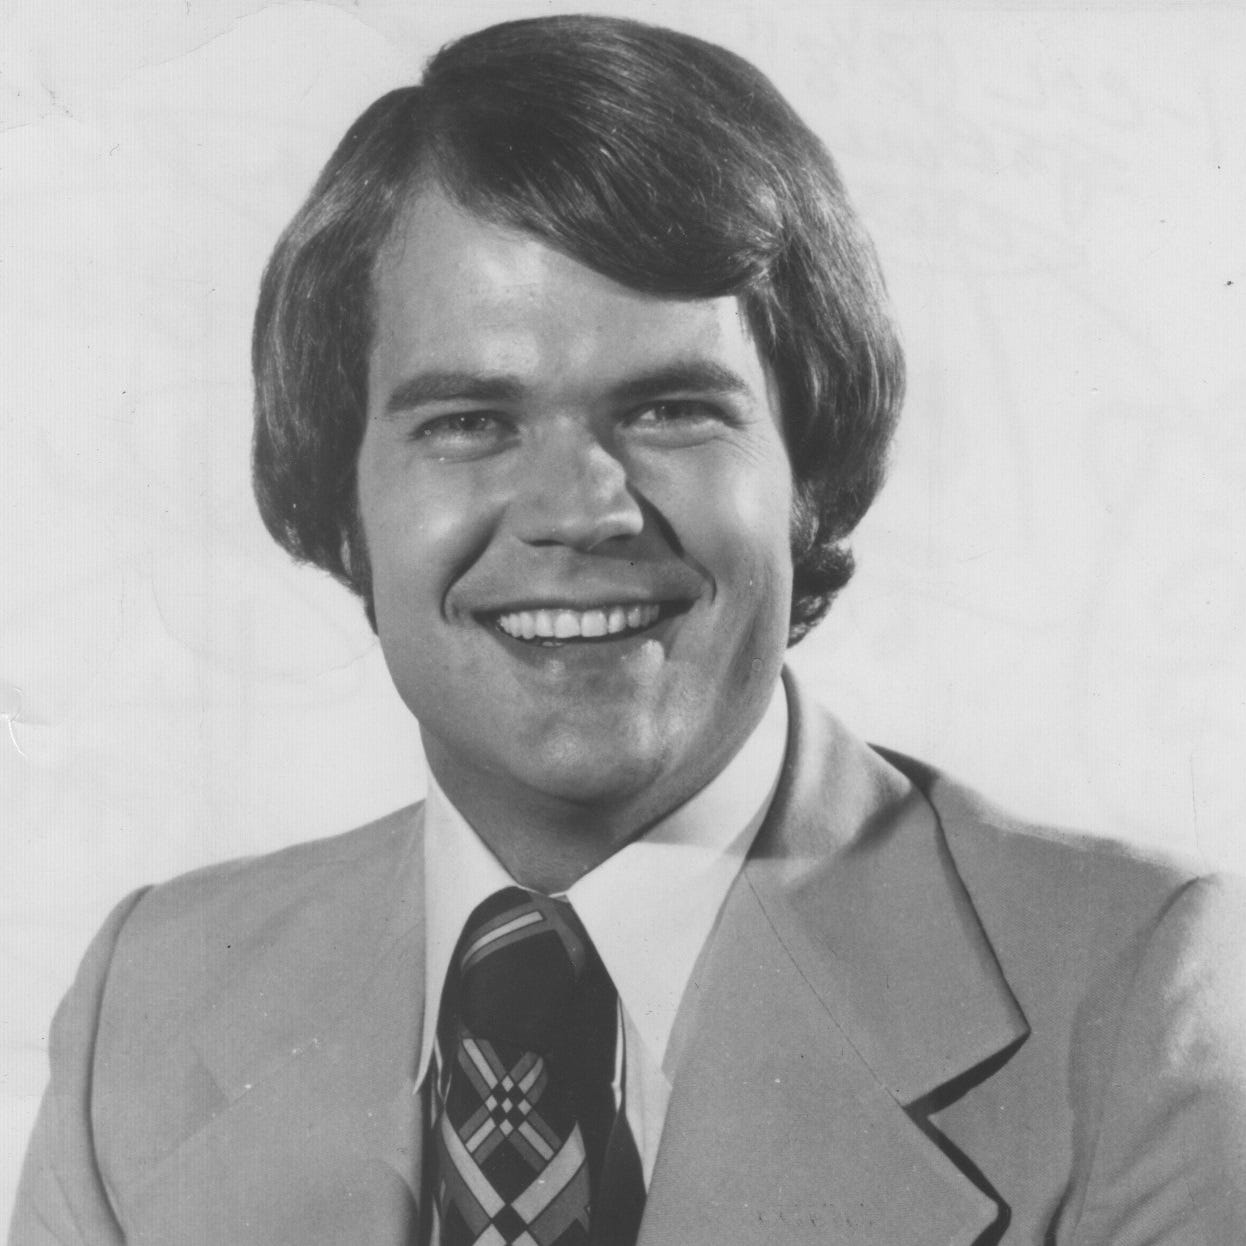 Chet Coppock, sportscaster who got his flamboyant start in Indianapolis, dies after auto accident